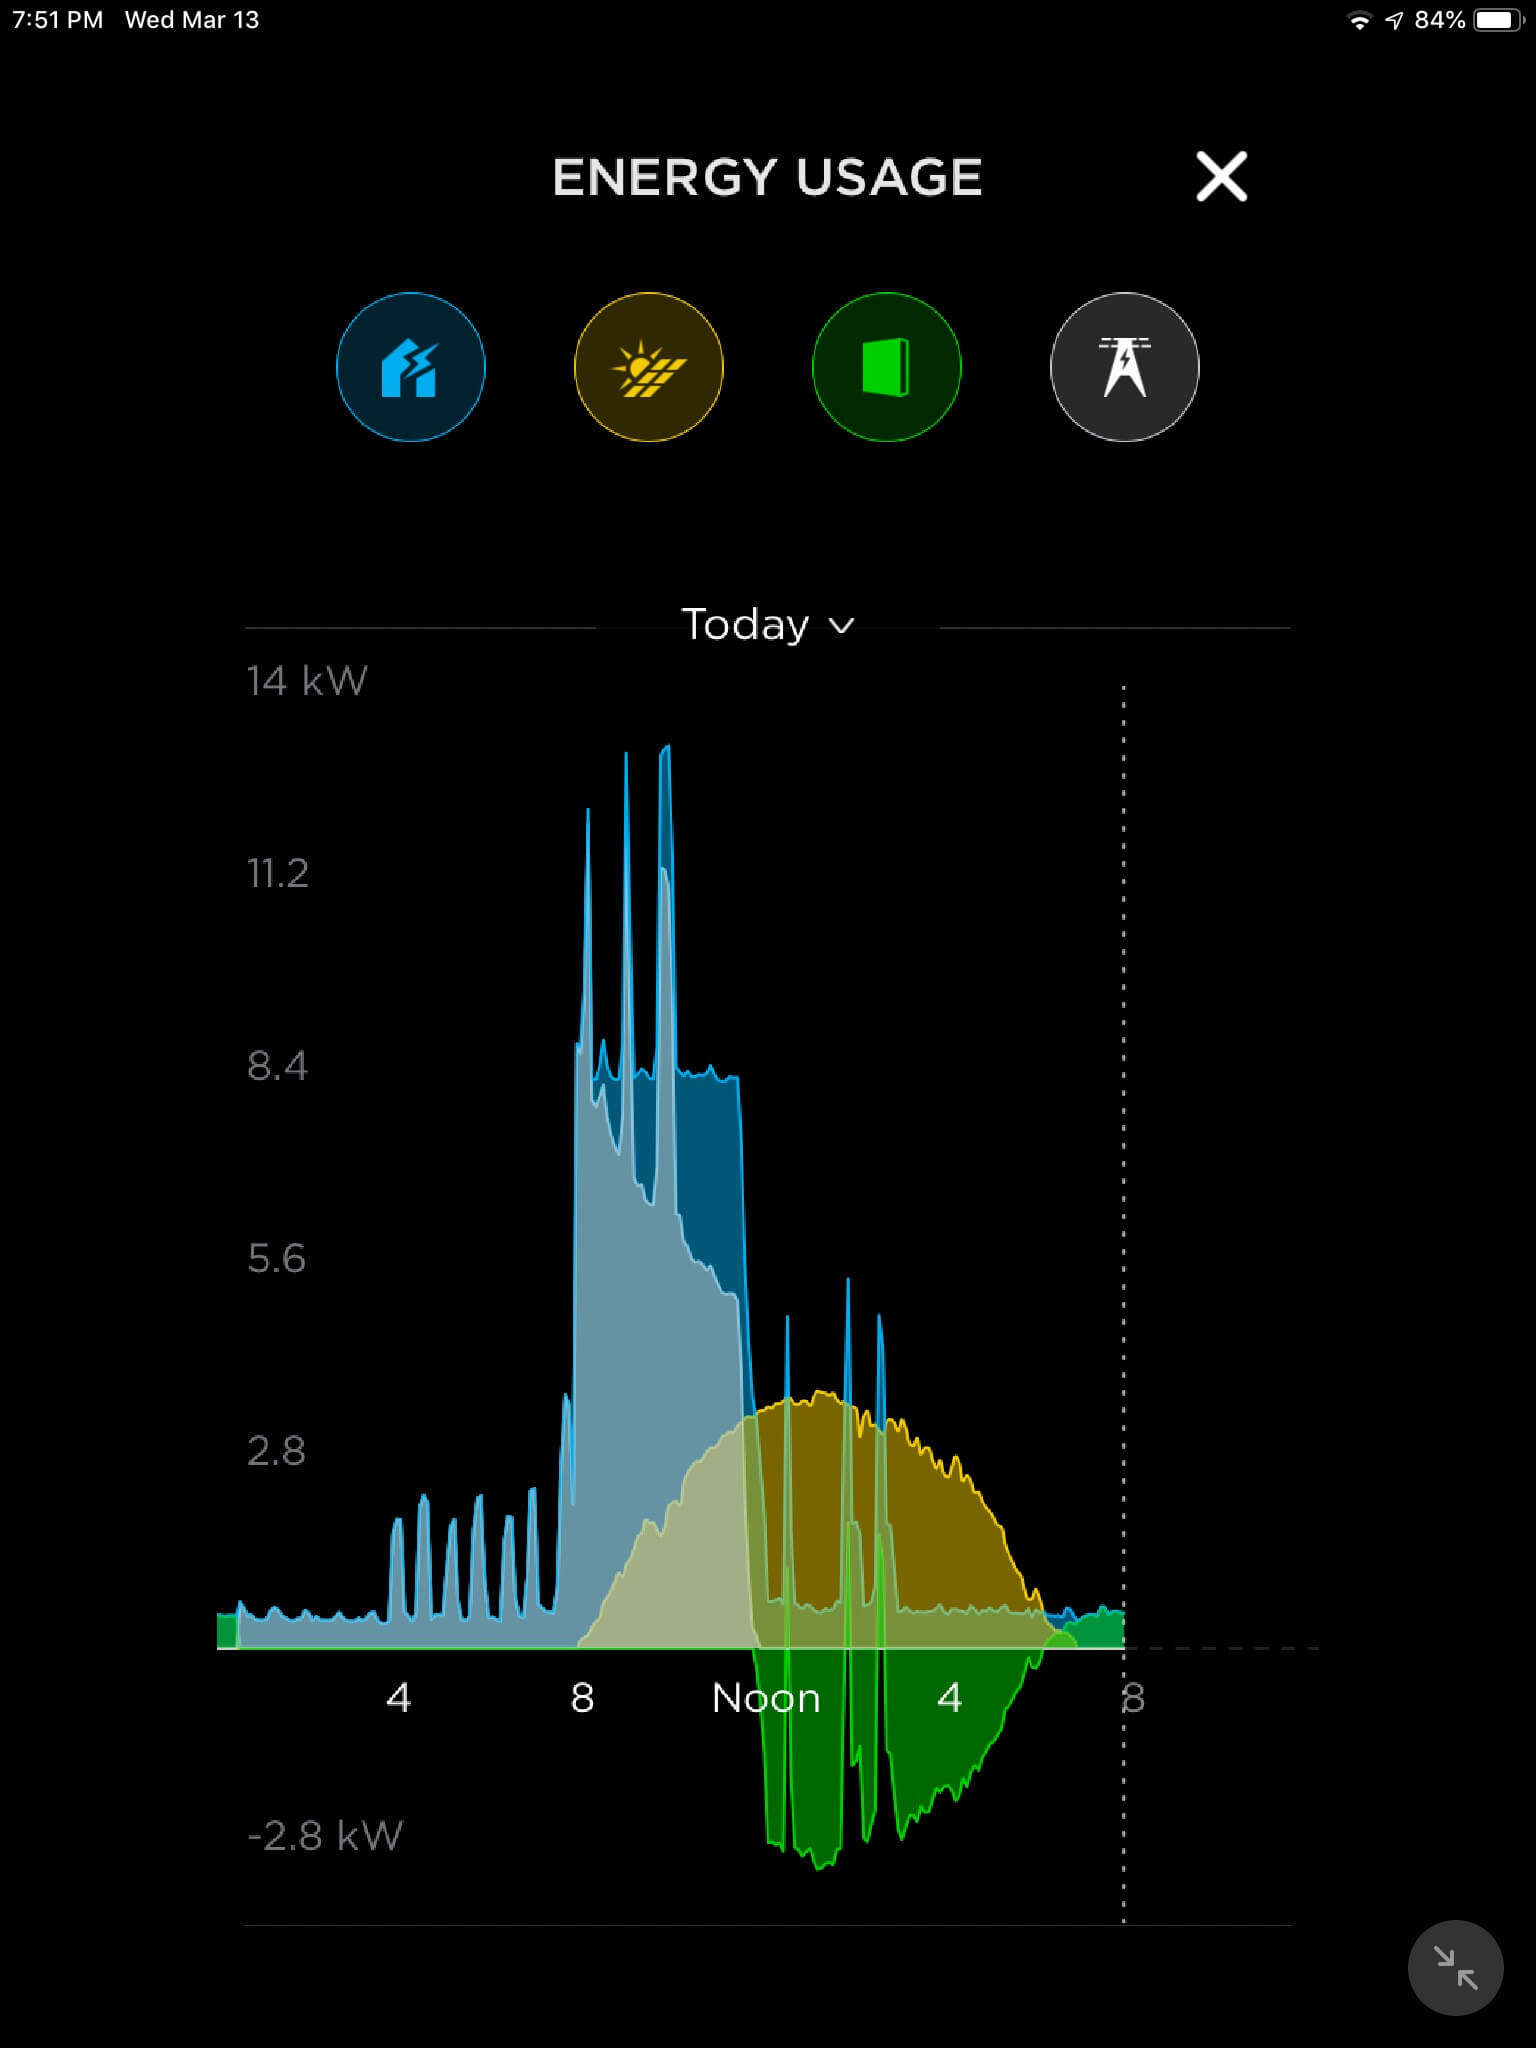 Tesla Powerwall and solar consumption monitoring with grid use